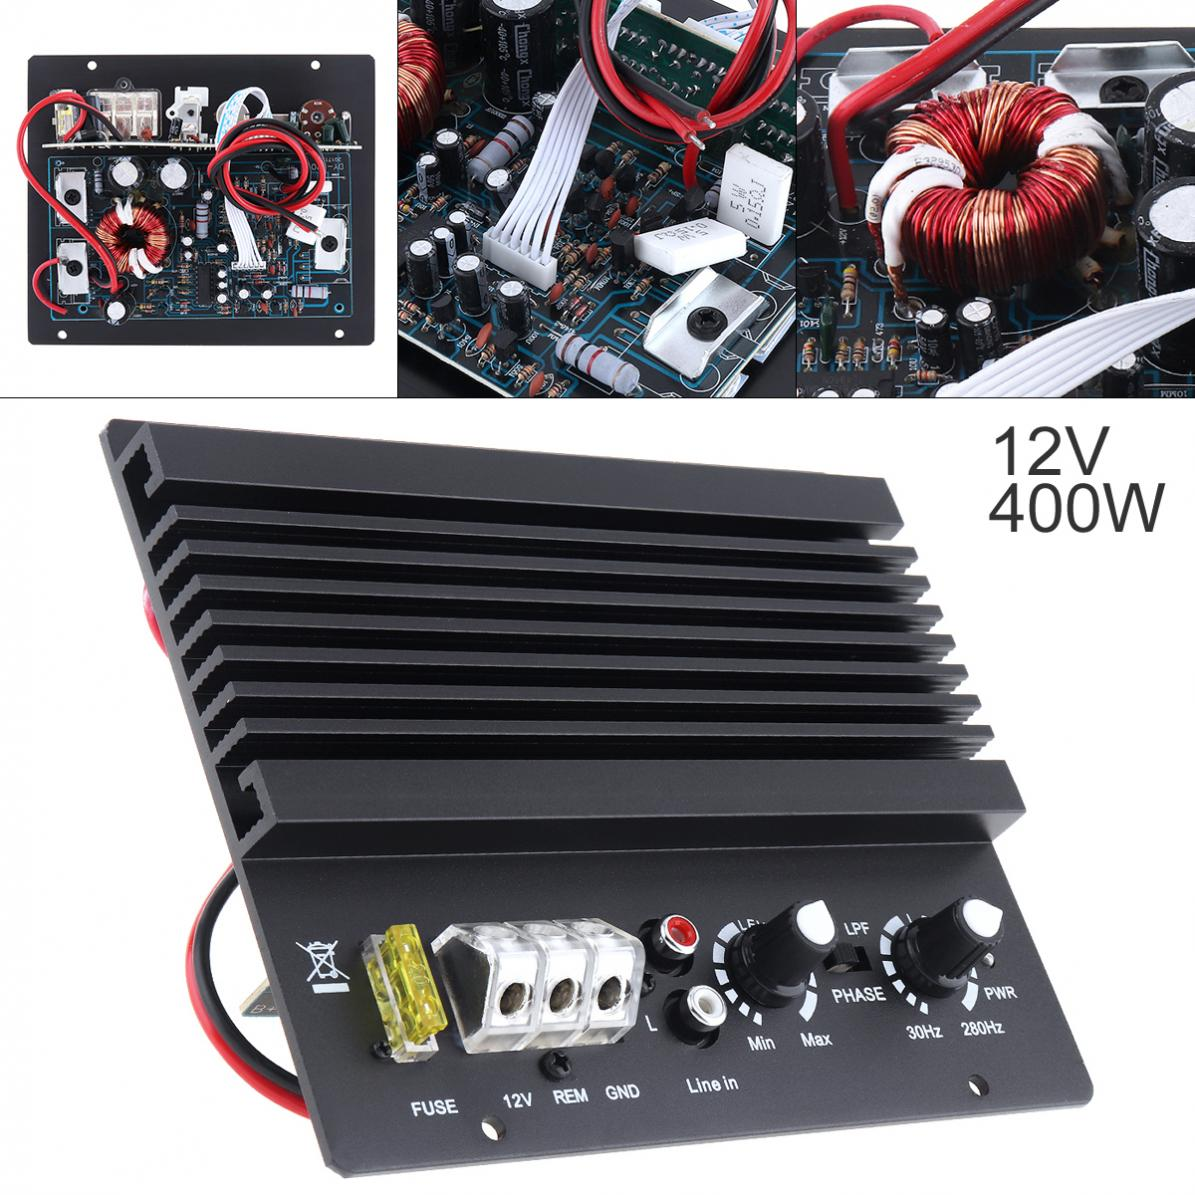 400W High Power Class AB Digital 2 Kanal Schwarz Aluminium Legierung Auto Audio AMP Subwoofer Verstärker